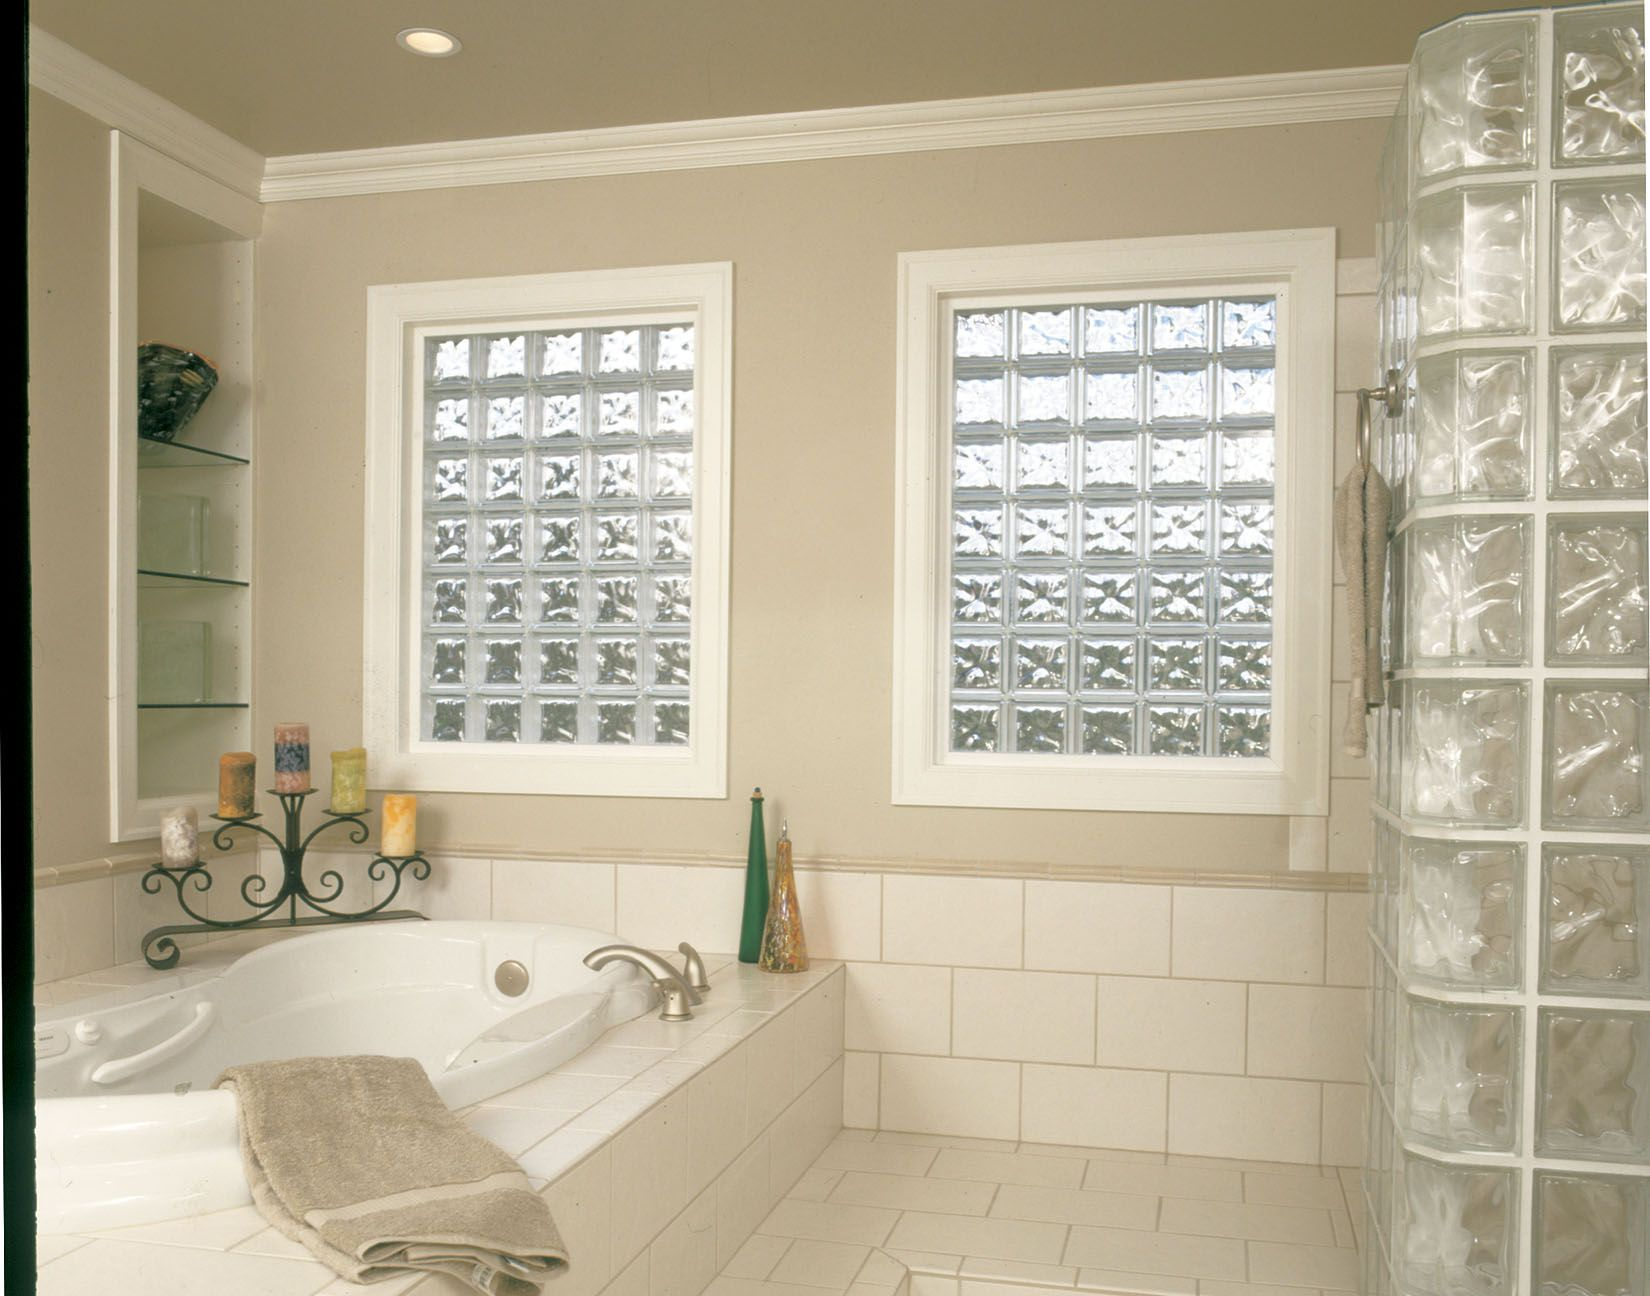 Bring Light To Your Bathroom Walls With Glass Block From Pittsburgh Corning Product Pittsburgh